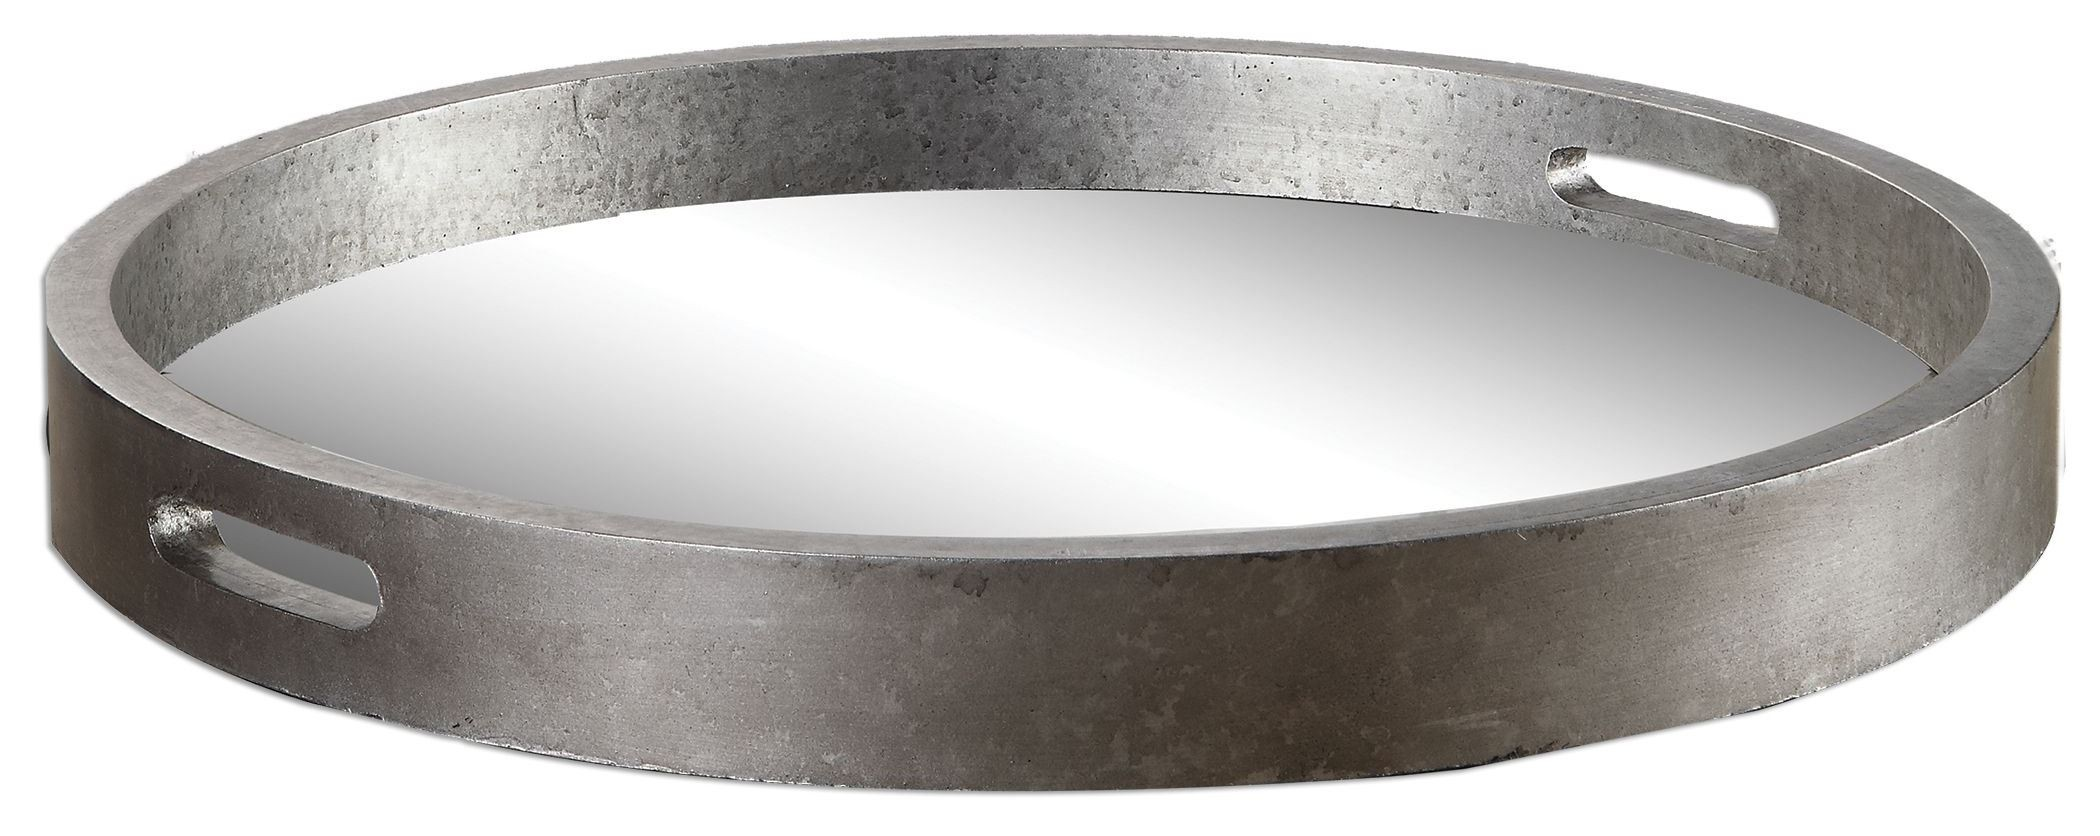 Bechet Round Silver Tray From Uttermost 19997 Coleman